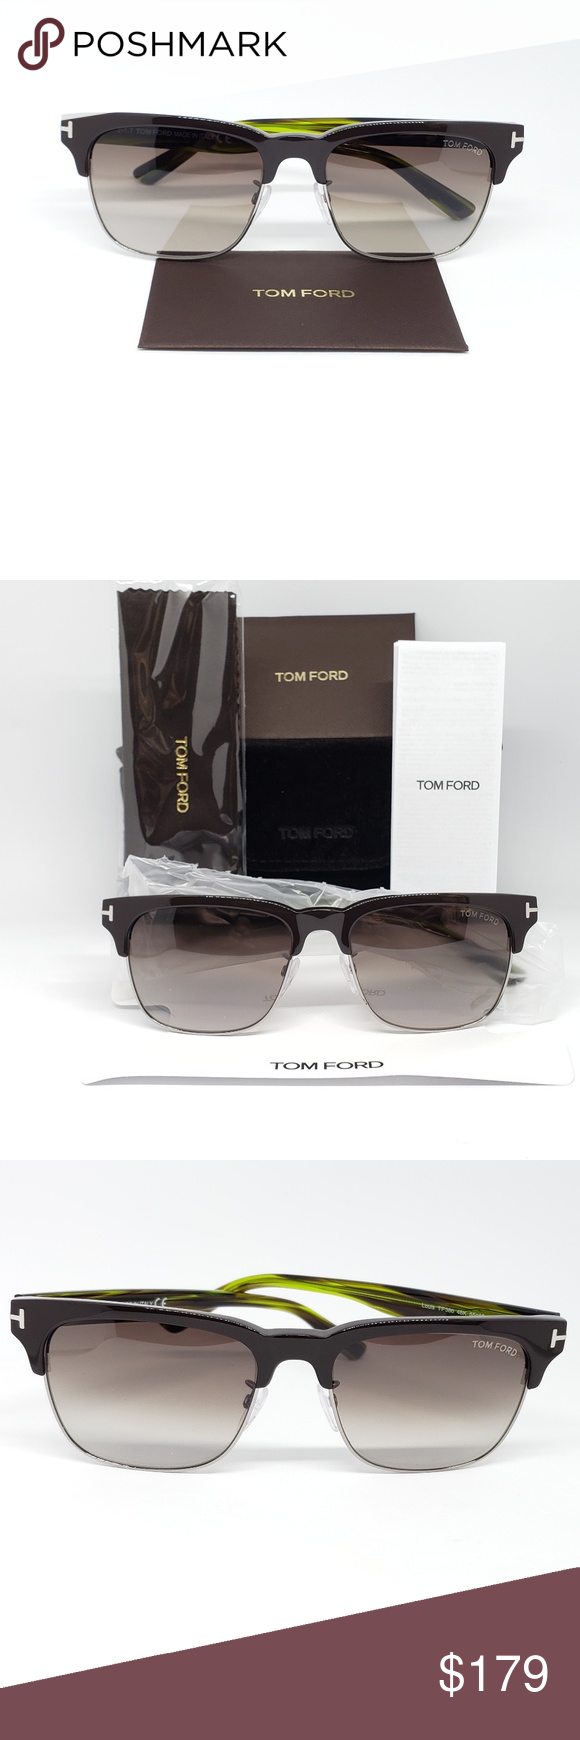 e9cefdee0931 Tom Ford Sunglasses Brown Green frame Louis Brand New, never used, never  worn Comes